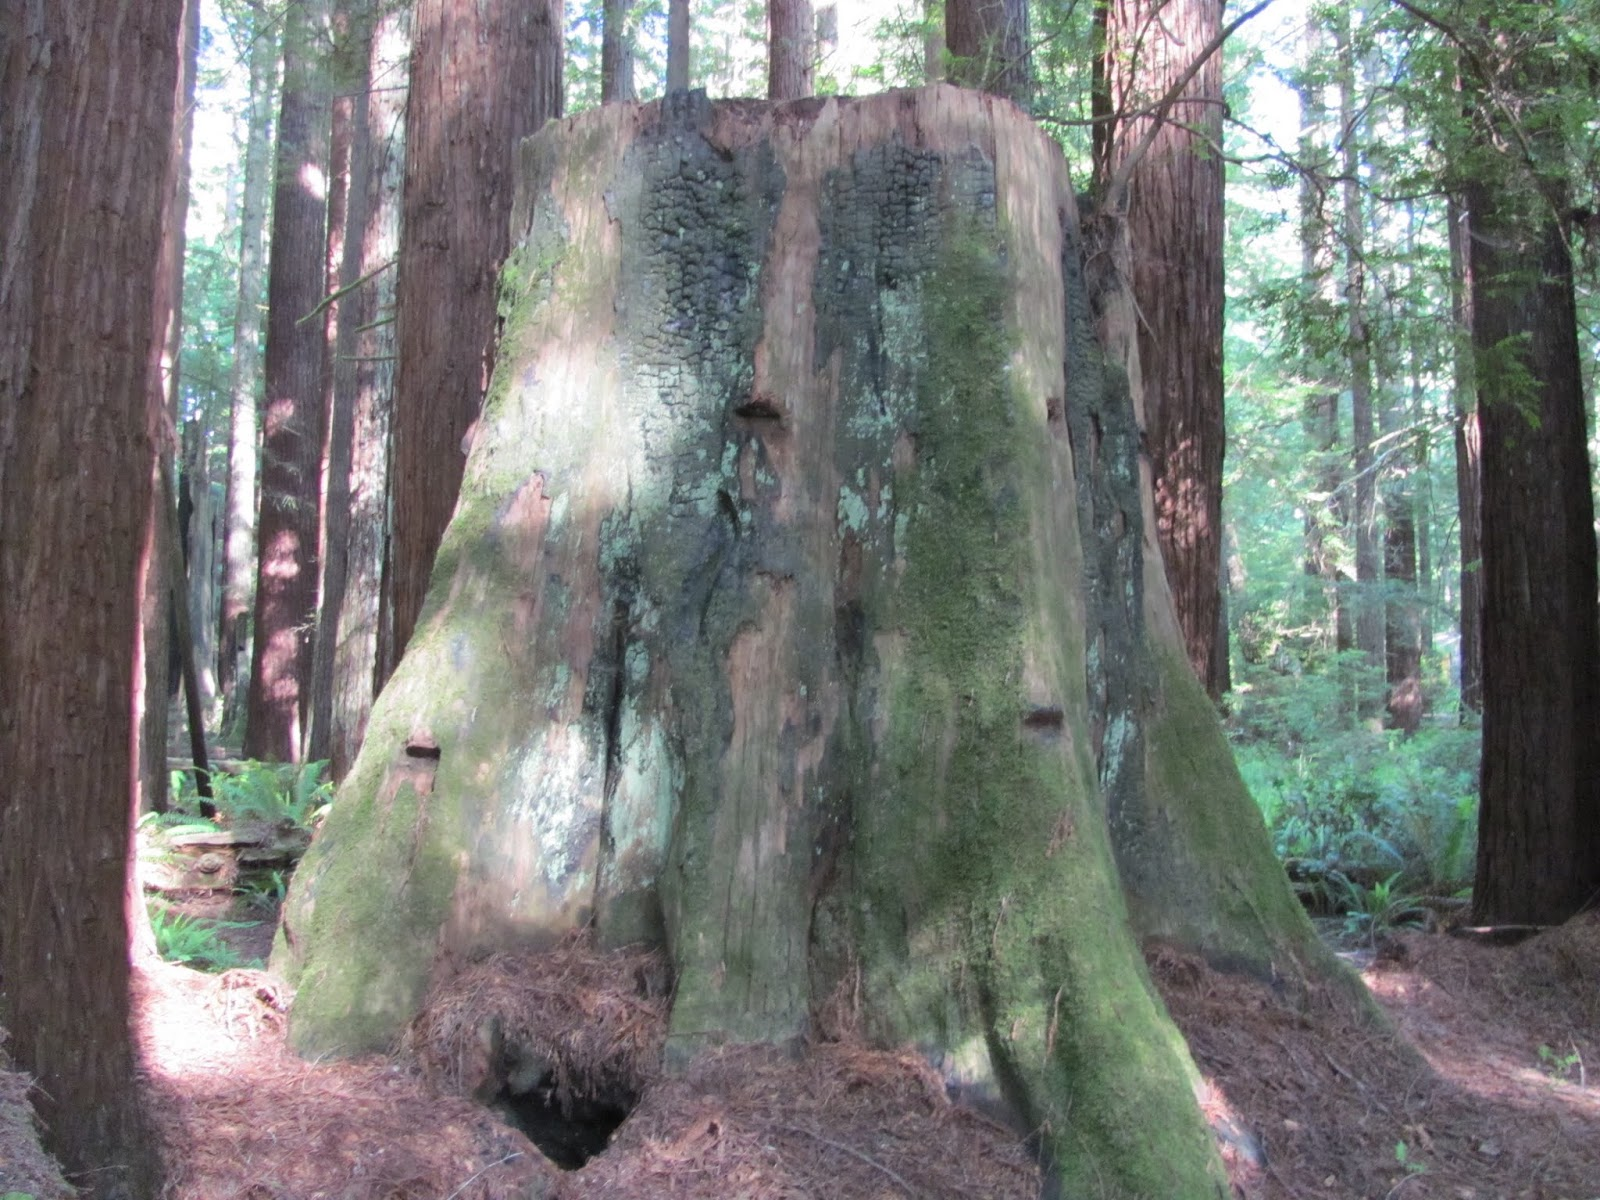 A mossy redwood stump at Florence Keller County Park, California